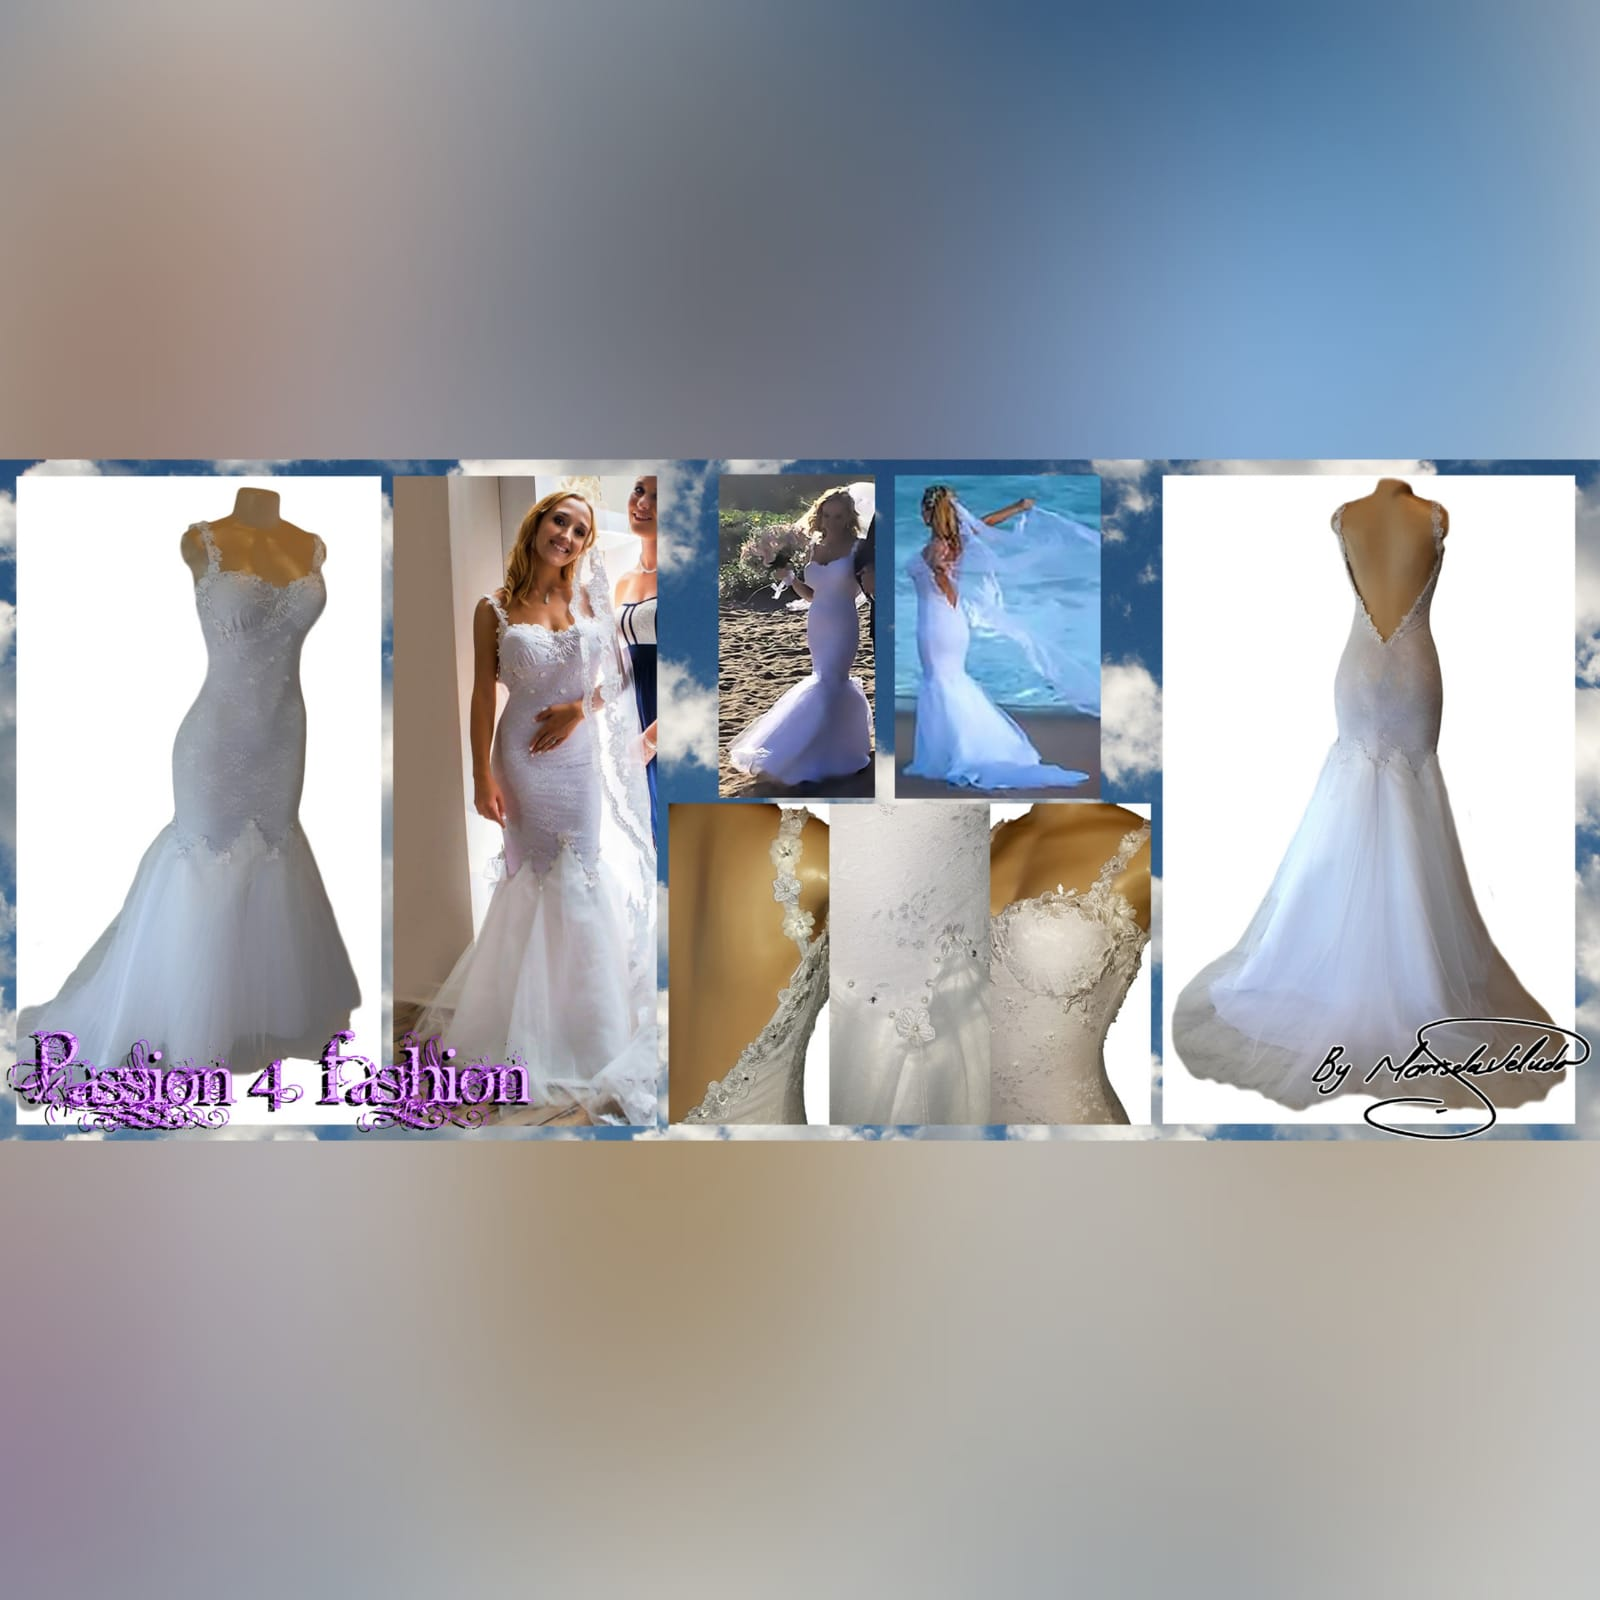 Pearled & beaded white lace & tulle ​mermaid wedding dress 11 white lace and tulle mermaid wedding dress, with a sweetheart neckline, v open back and a train. Detailed with lace, pearls and silver beads.